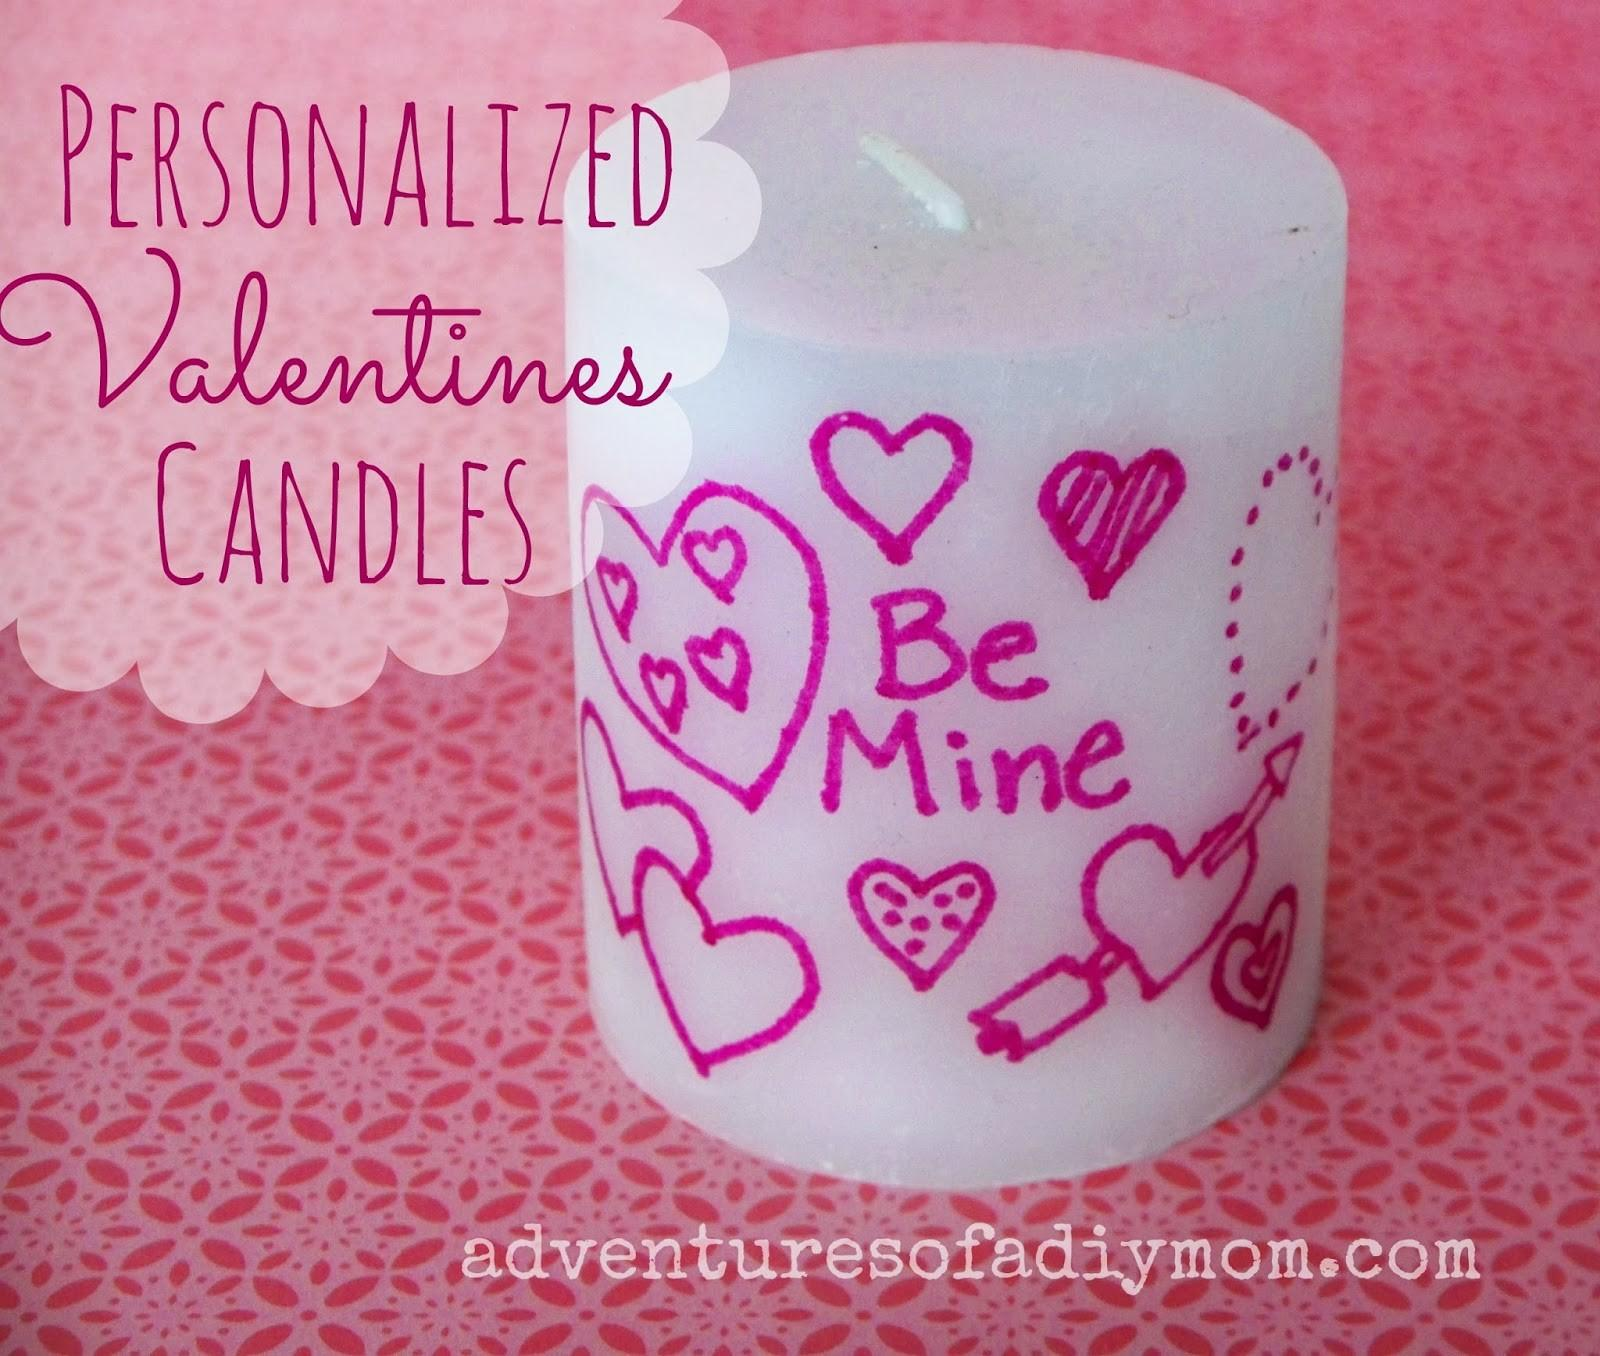 Personalized Valentines Candles Adventures Diy Mom